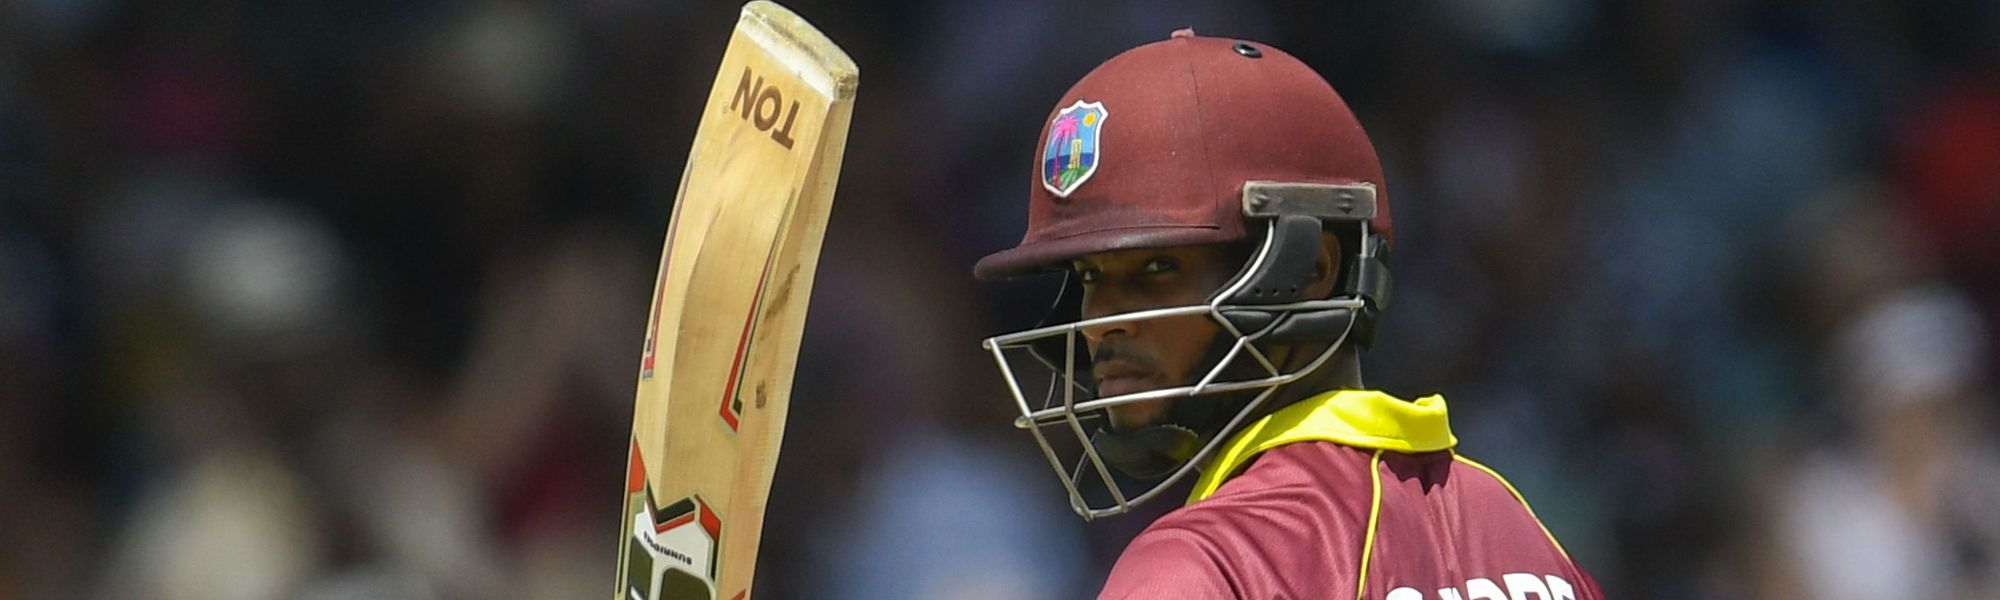 Four of Shai Hope's six ODI centuries have come while opening the batting